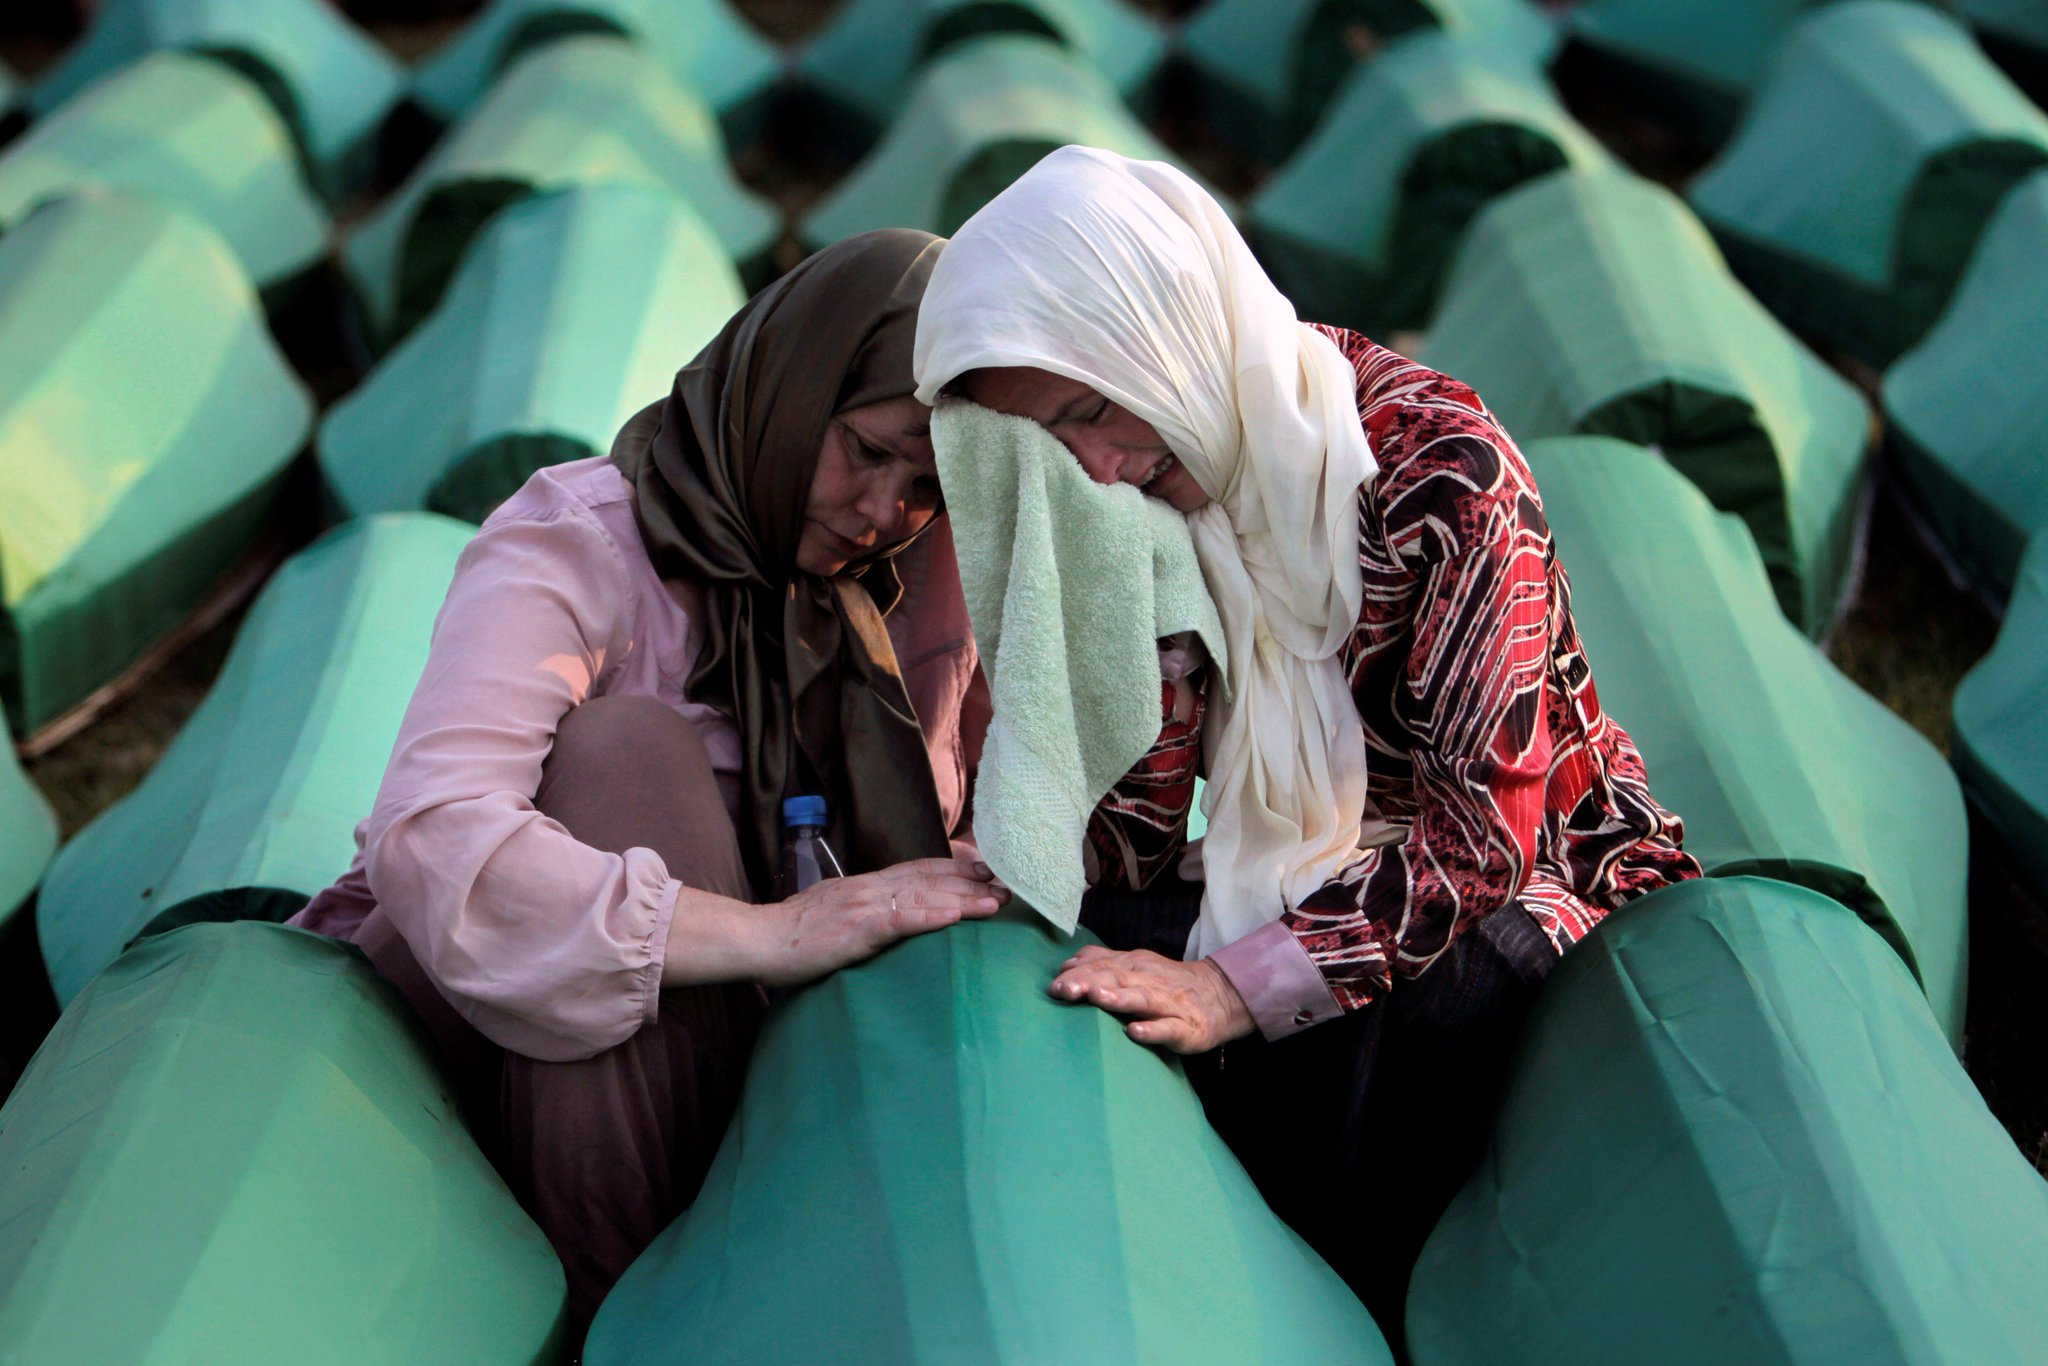 The #Srebrenica genocide was the worst massacre in Europe since WWll. Here's what led to it. https://t.co/M7MsqPzwJN